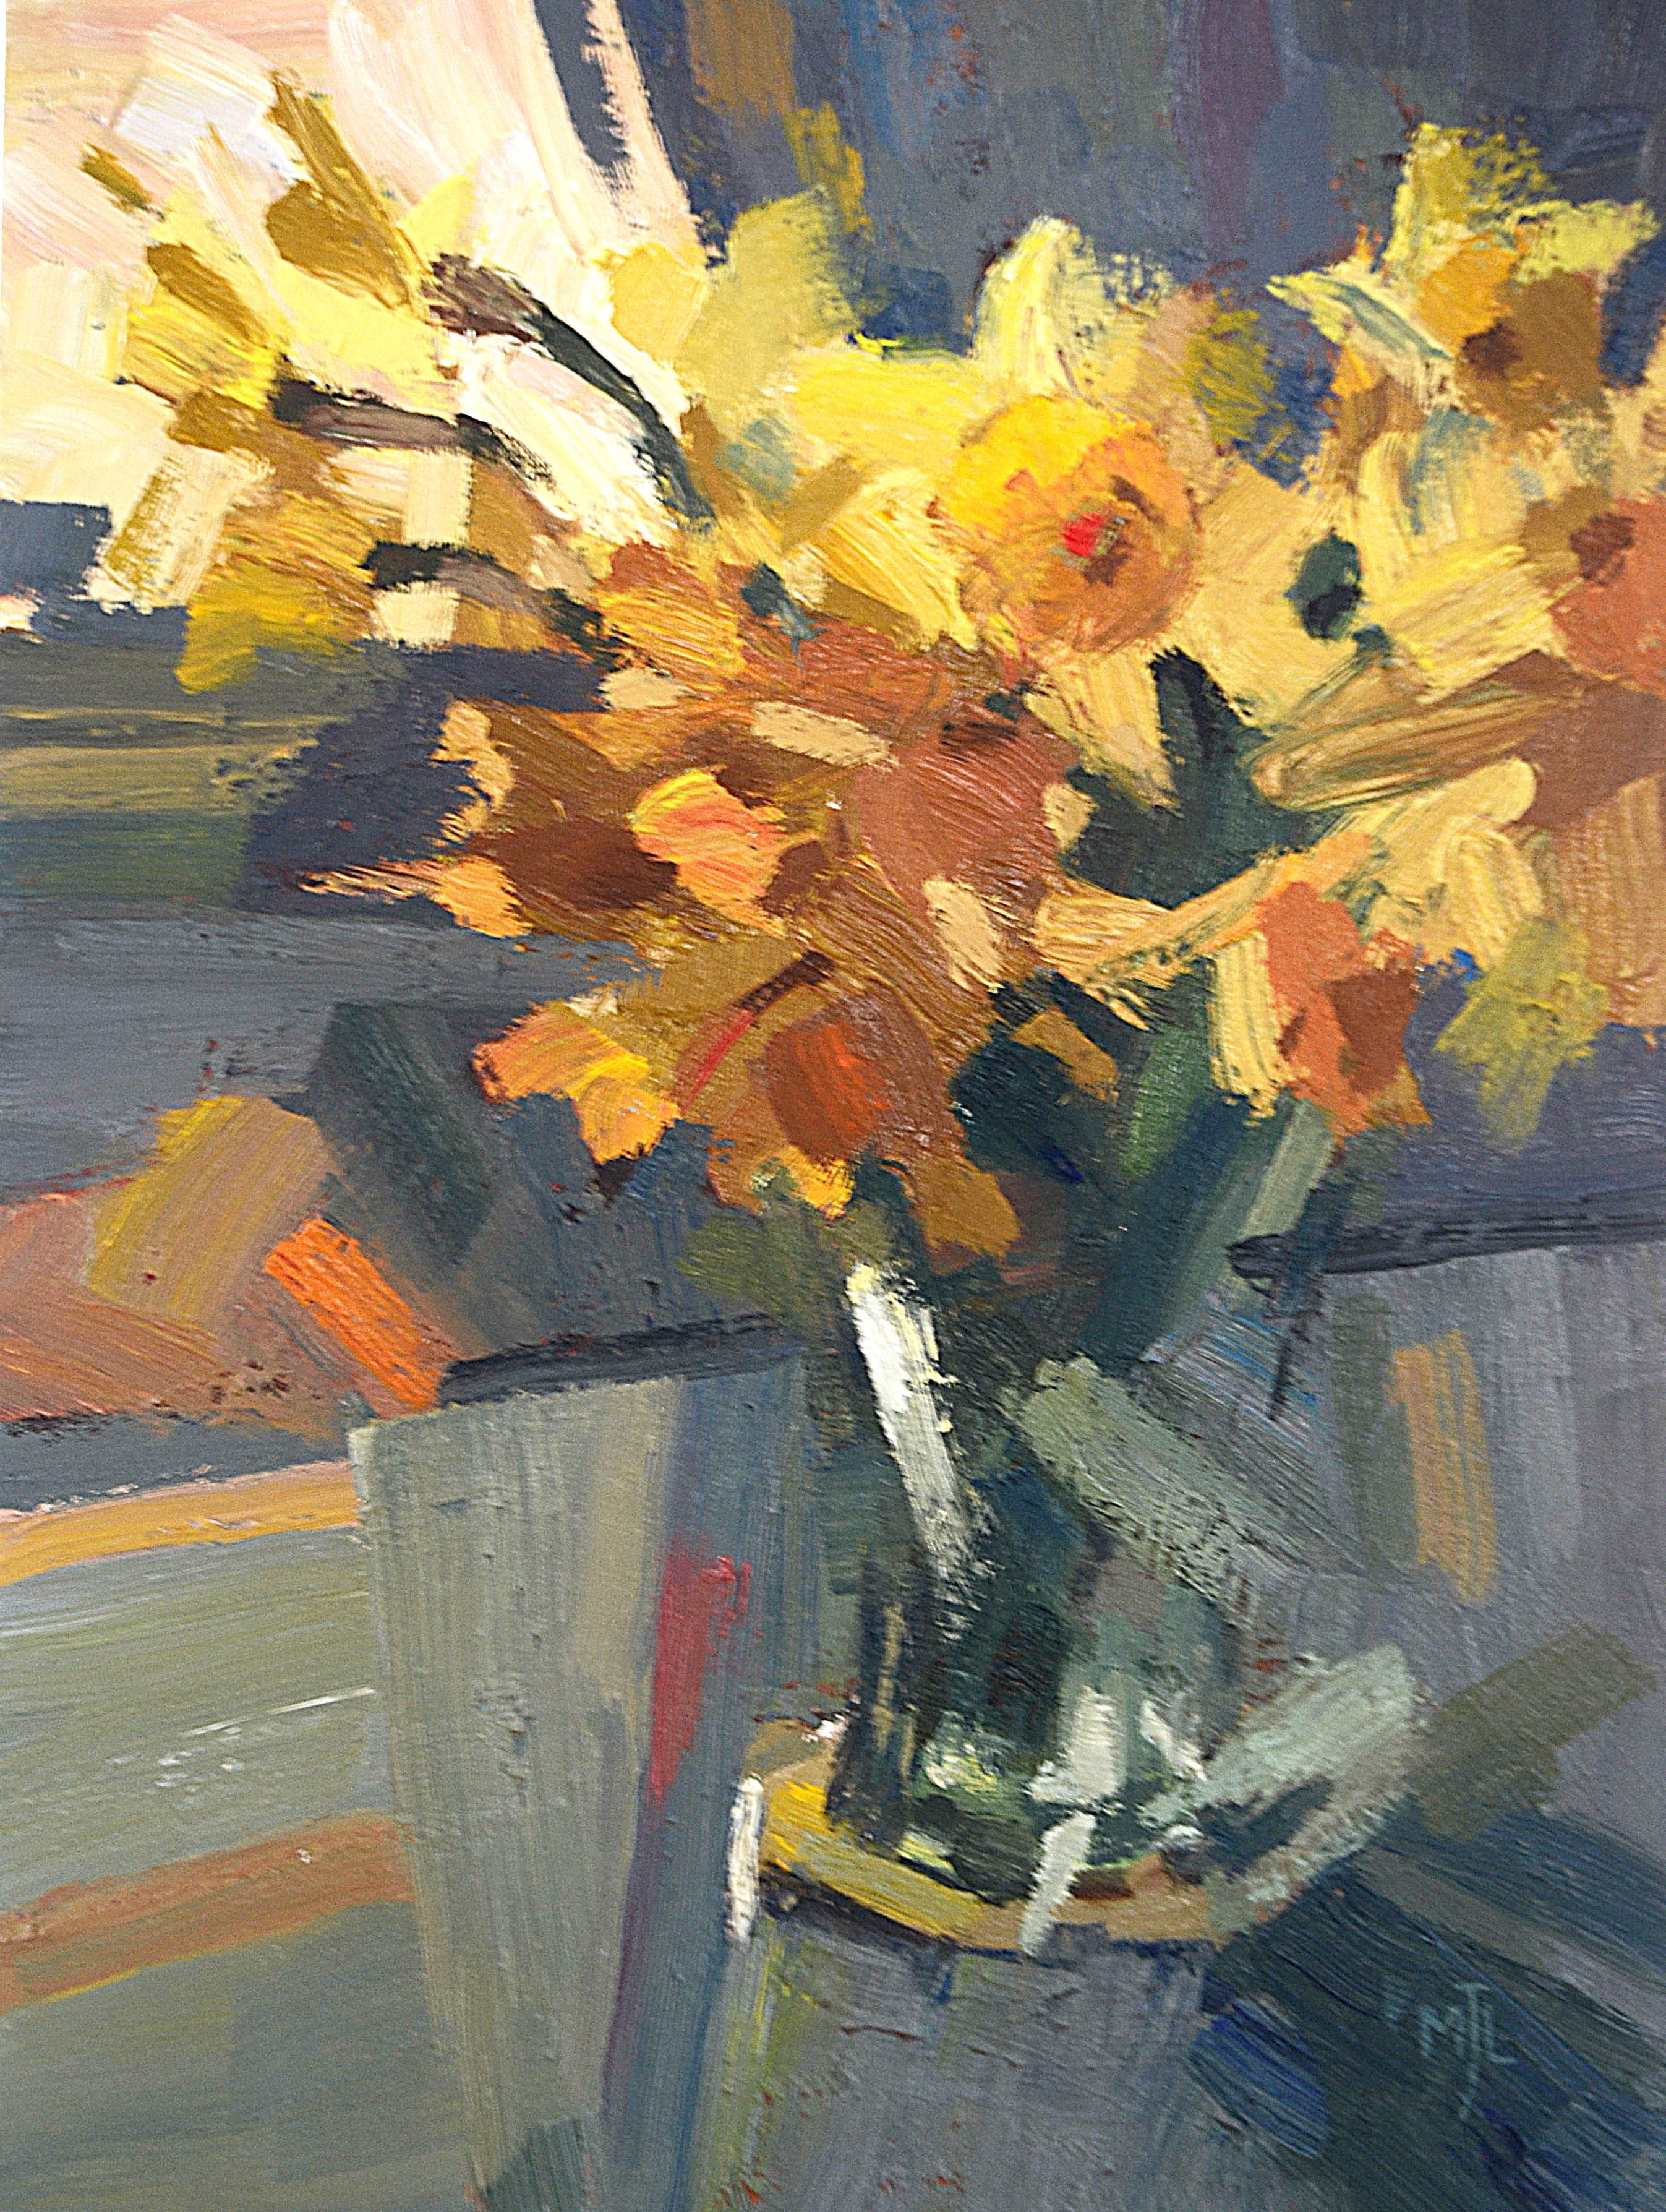 Daffodils on the Table, Oil on canvas, 40x30cm, 16x12in